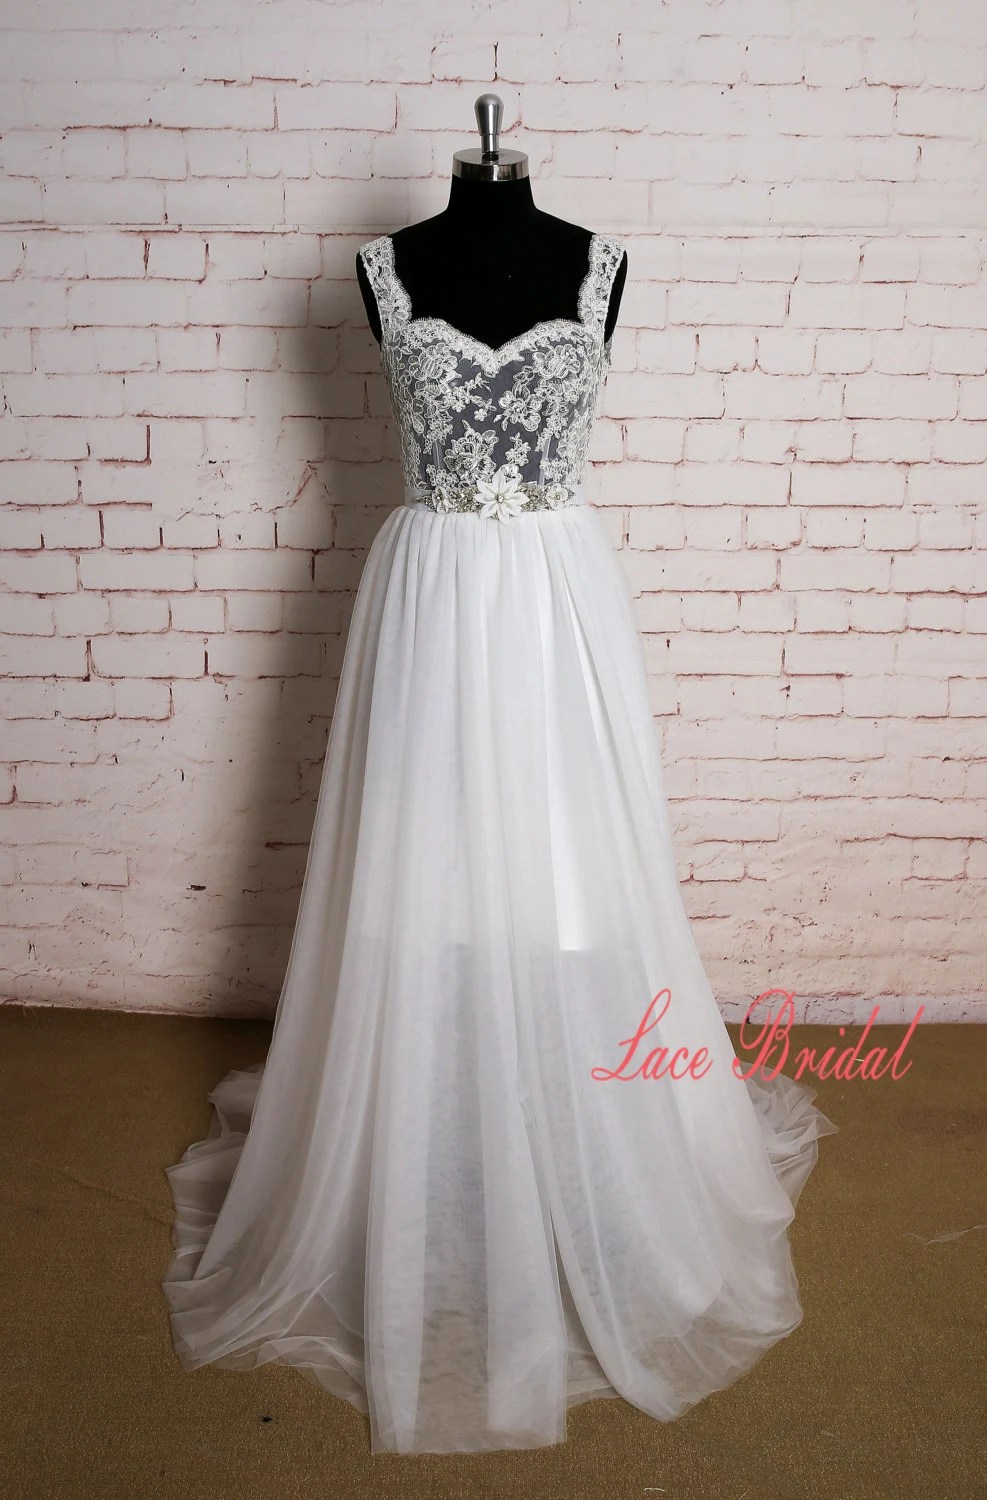 Lace Straps Wedding Dress with Sheer Bodice Backless by LaceBridal